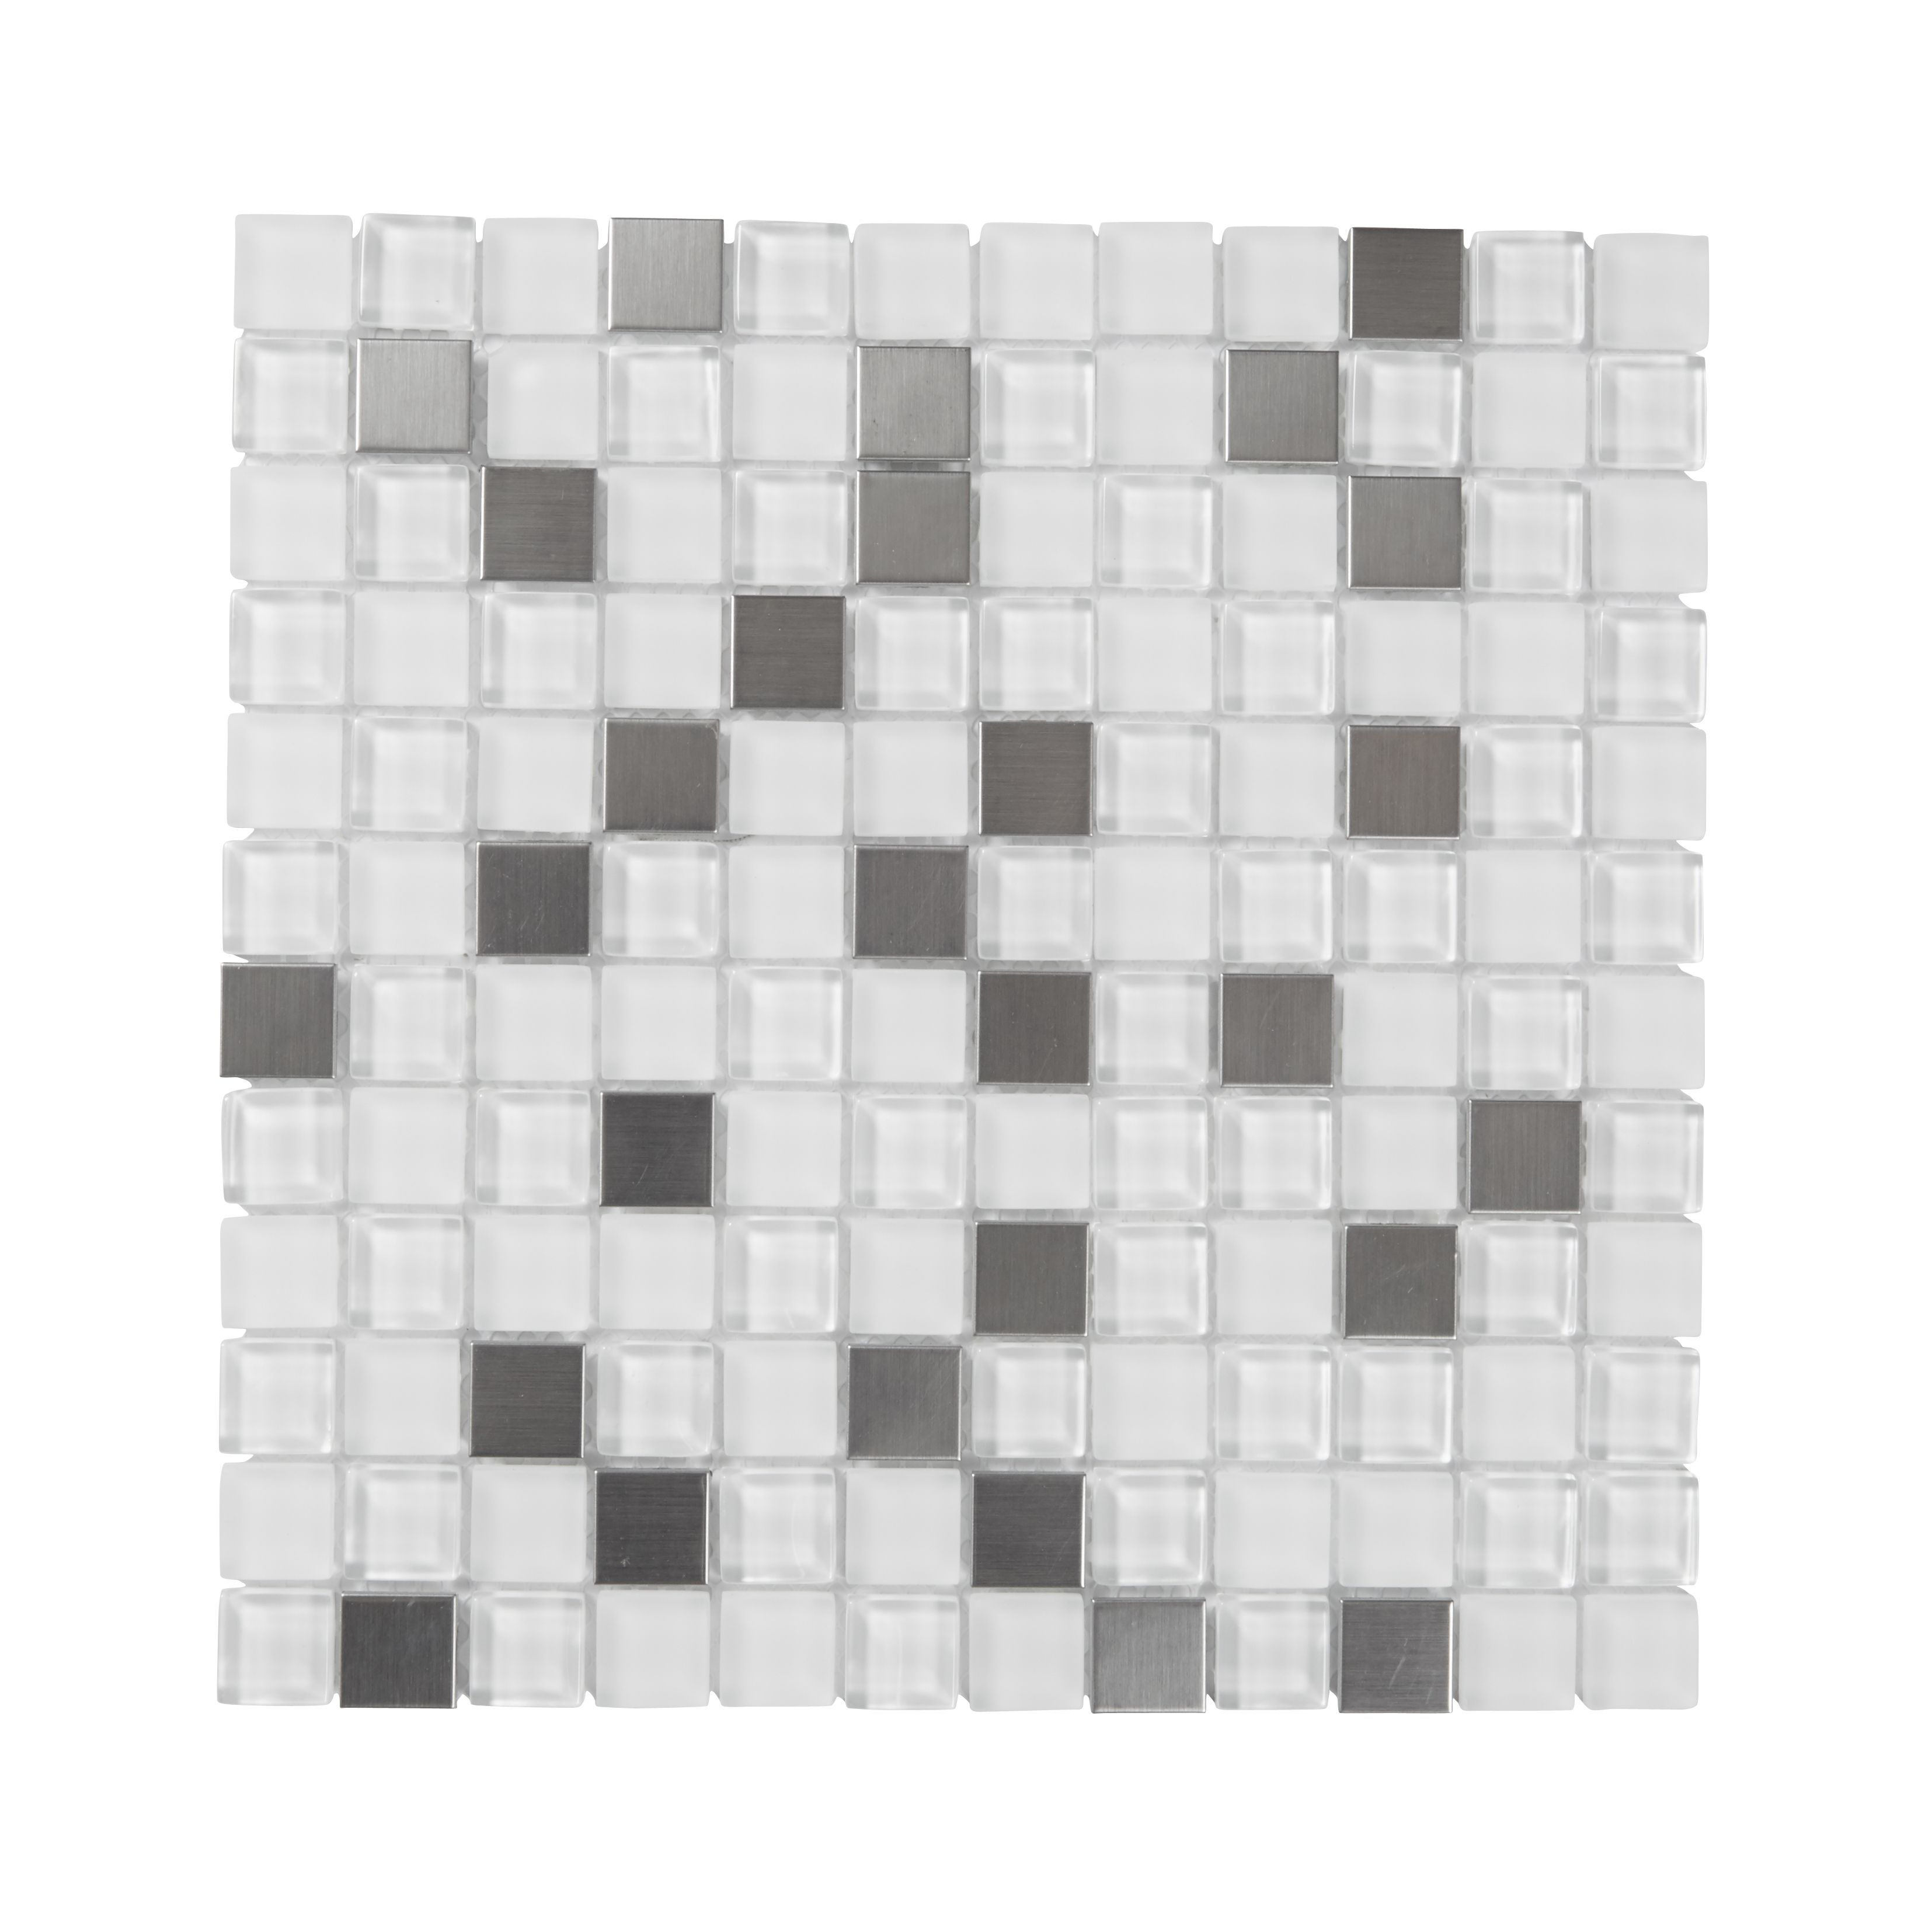 Green Glass Marble Mosaic Tile L 300mm W 300mm: Prate Grey & White Glass & Stainless Steel Mosaic Tile, (L